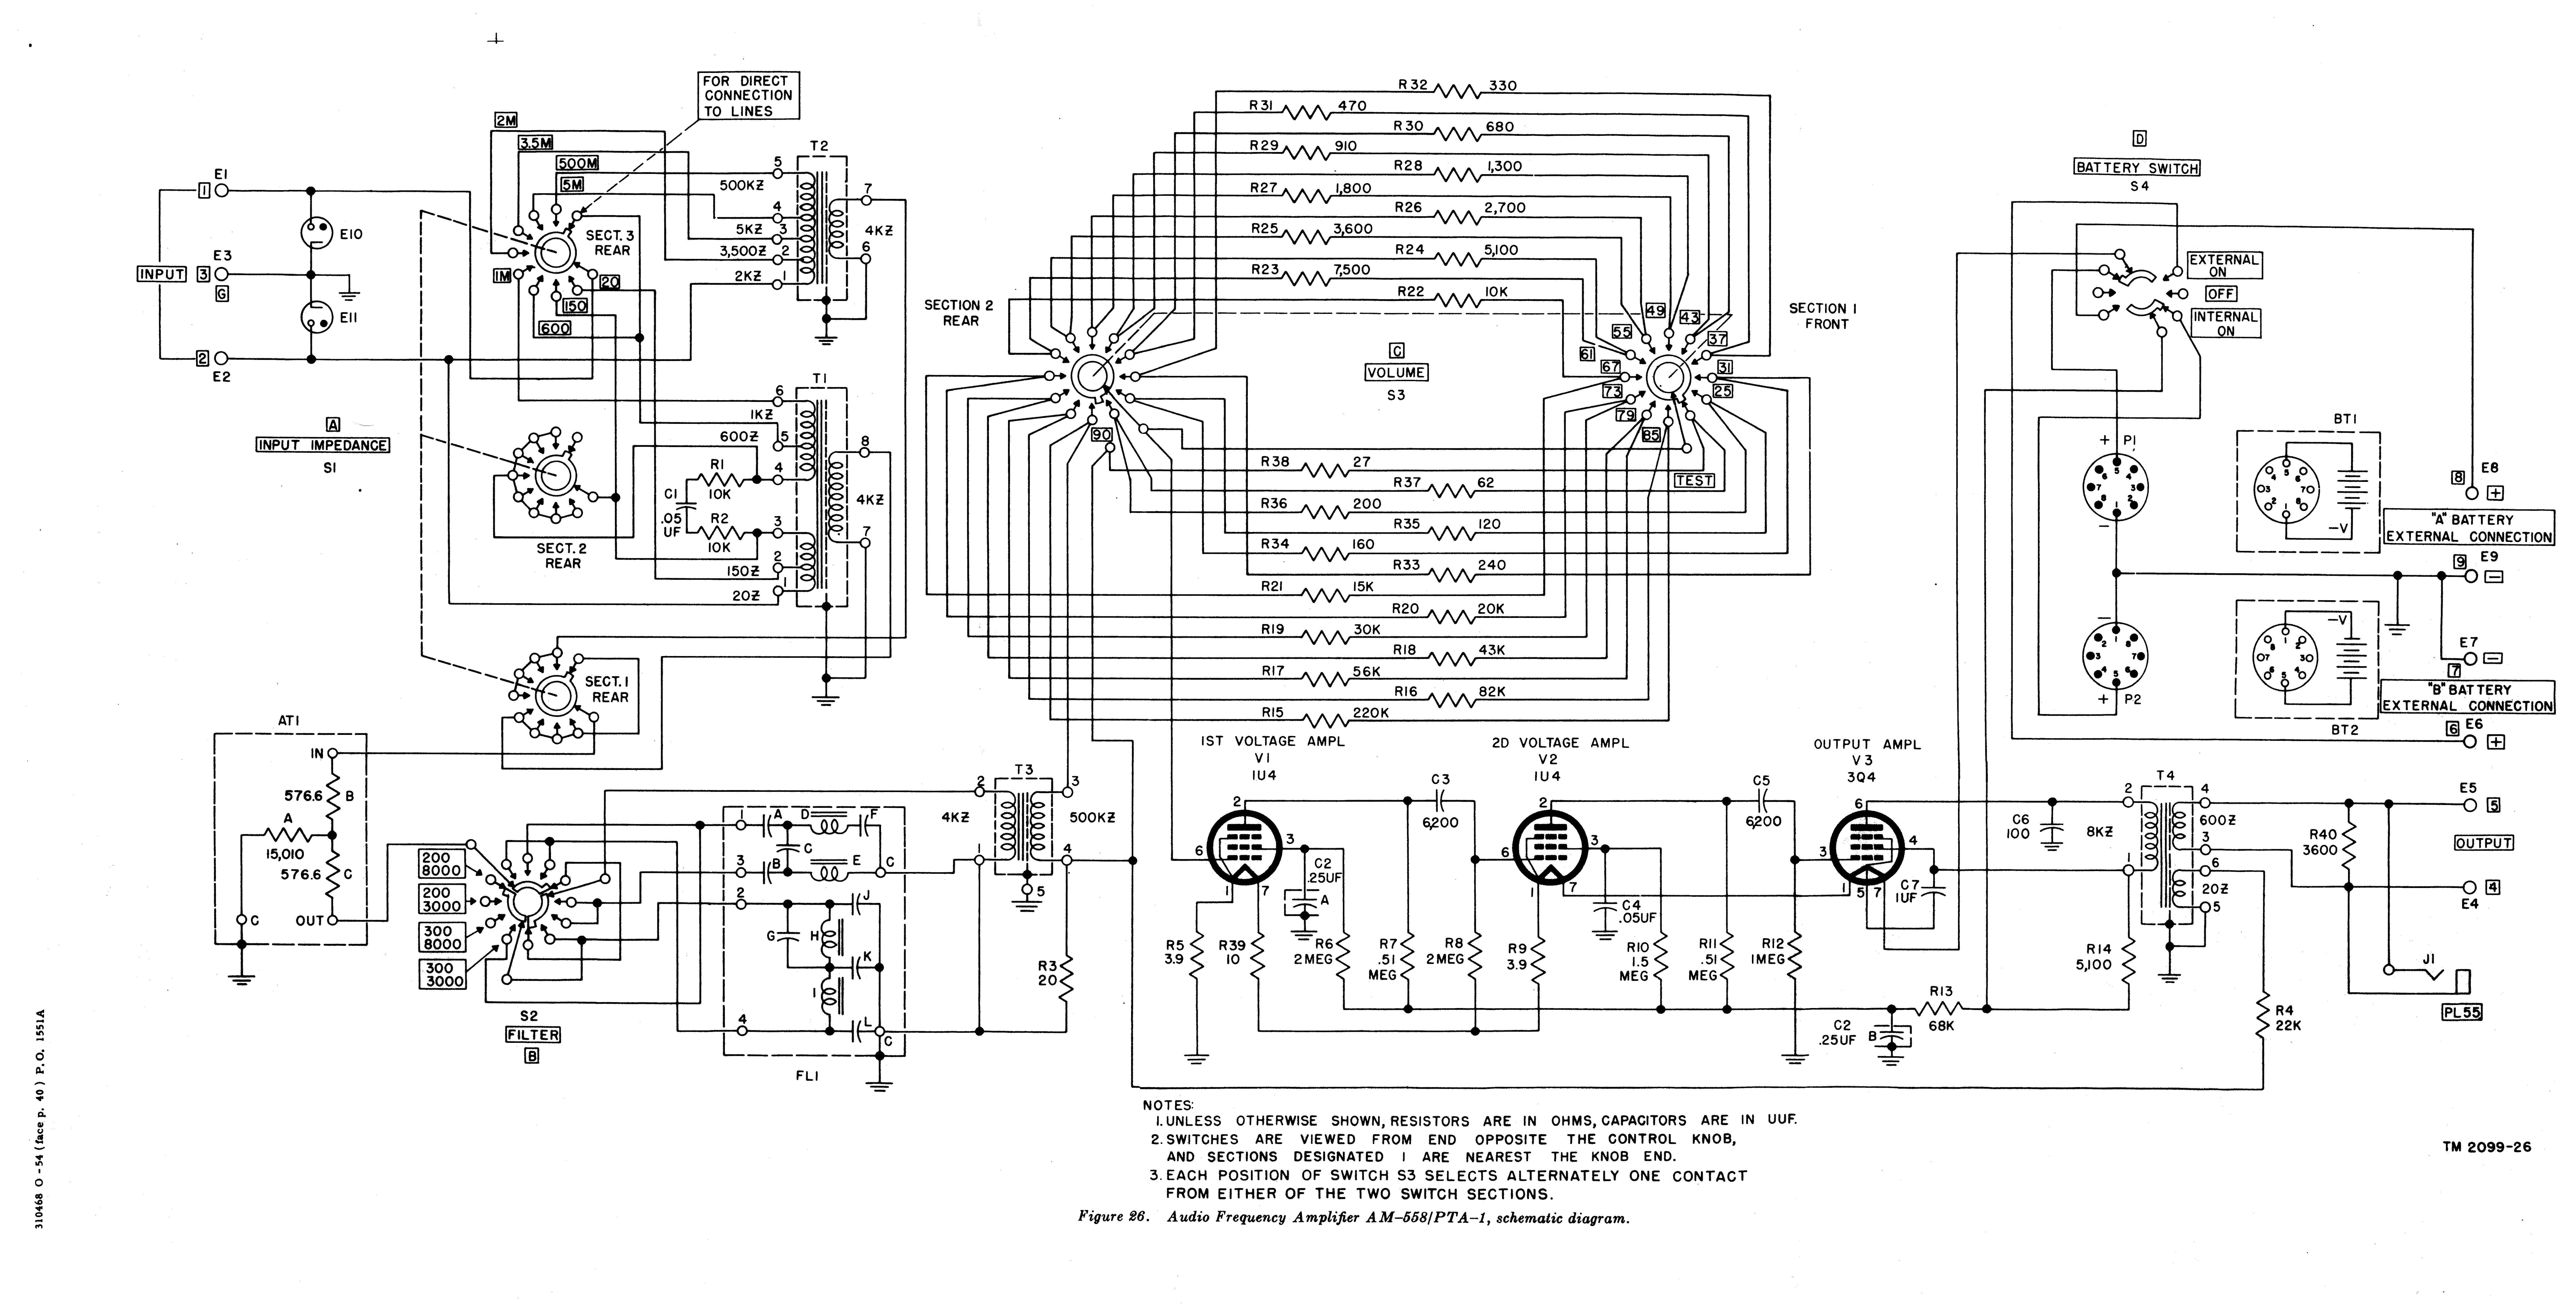 Audio Frequency Amplifier AM-558/PTA-1, schematic diagram.